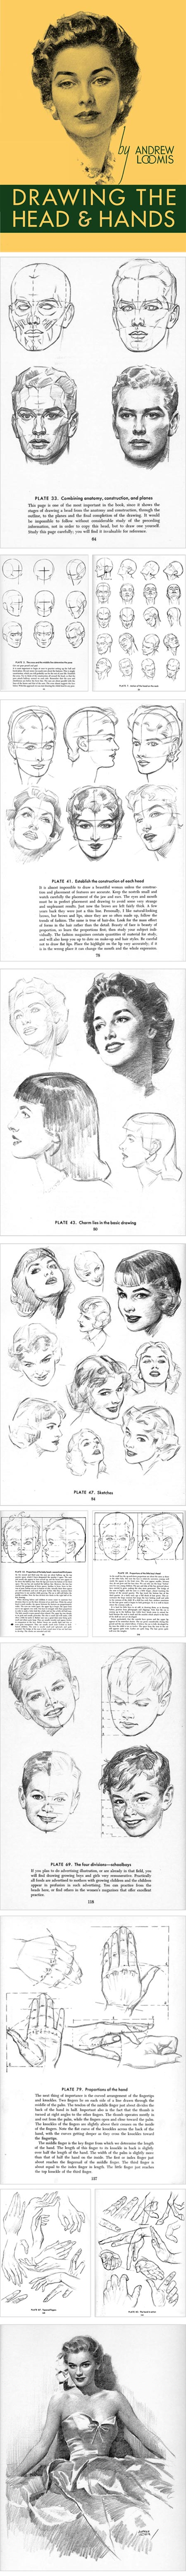 Drawing the Head and Hands, Andrew Loomis